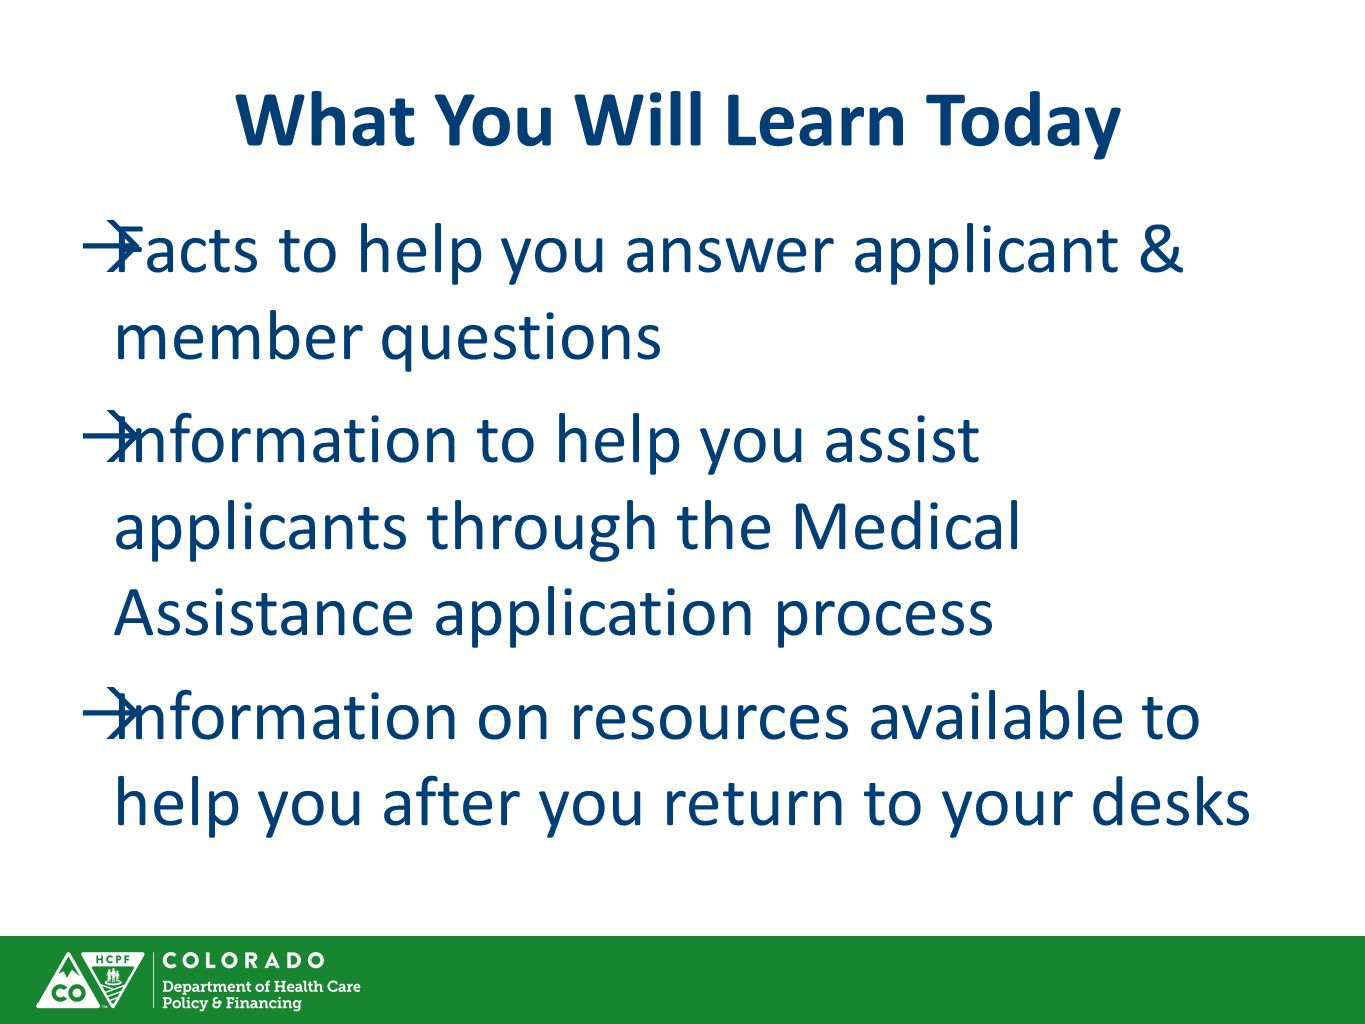 What You Will Learn Today  Facts to help you answer applicant & member questions  Information to help you assist applicants through the Medical Assistance application process  Information on resources available to help you after you return to your desks